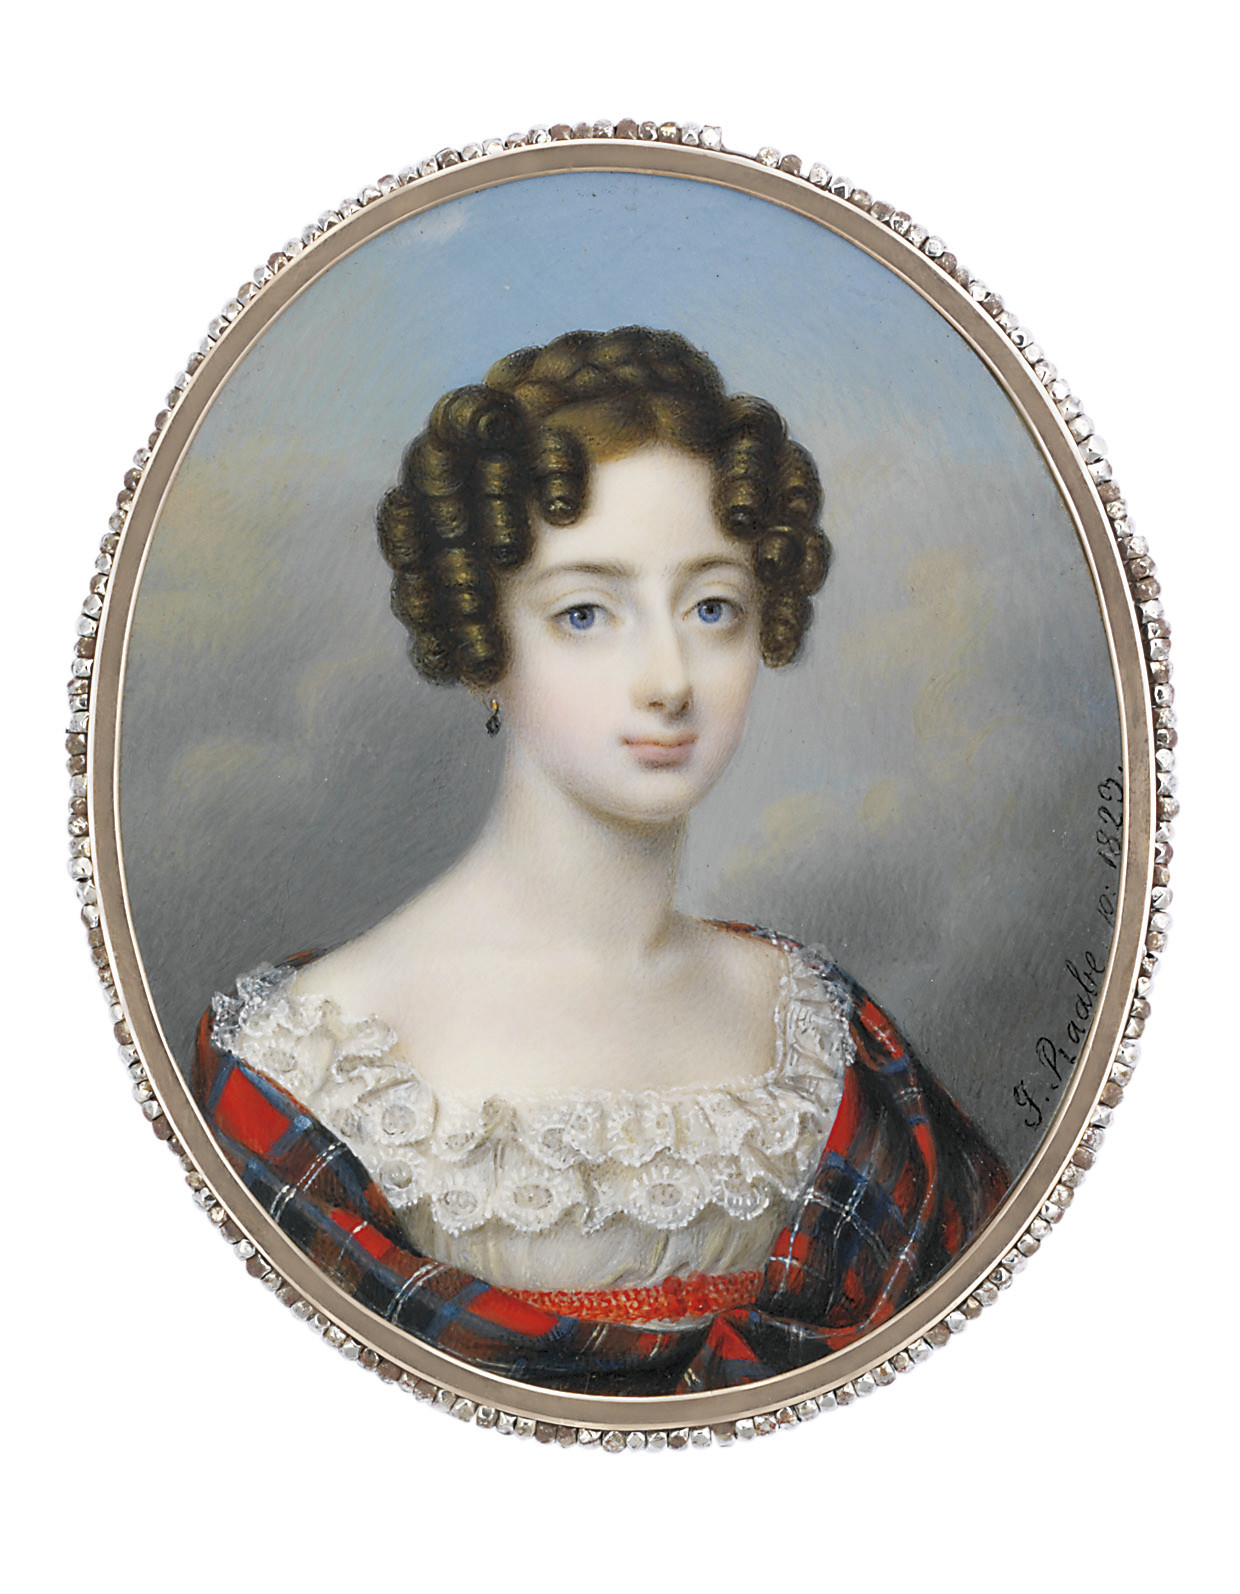 A young lady, in white muslin dress with two layers of valenciennes lace bordering the square neckline, red crochet sash, tartan wool shawl, gilt pendant earring